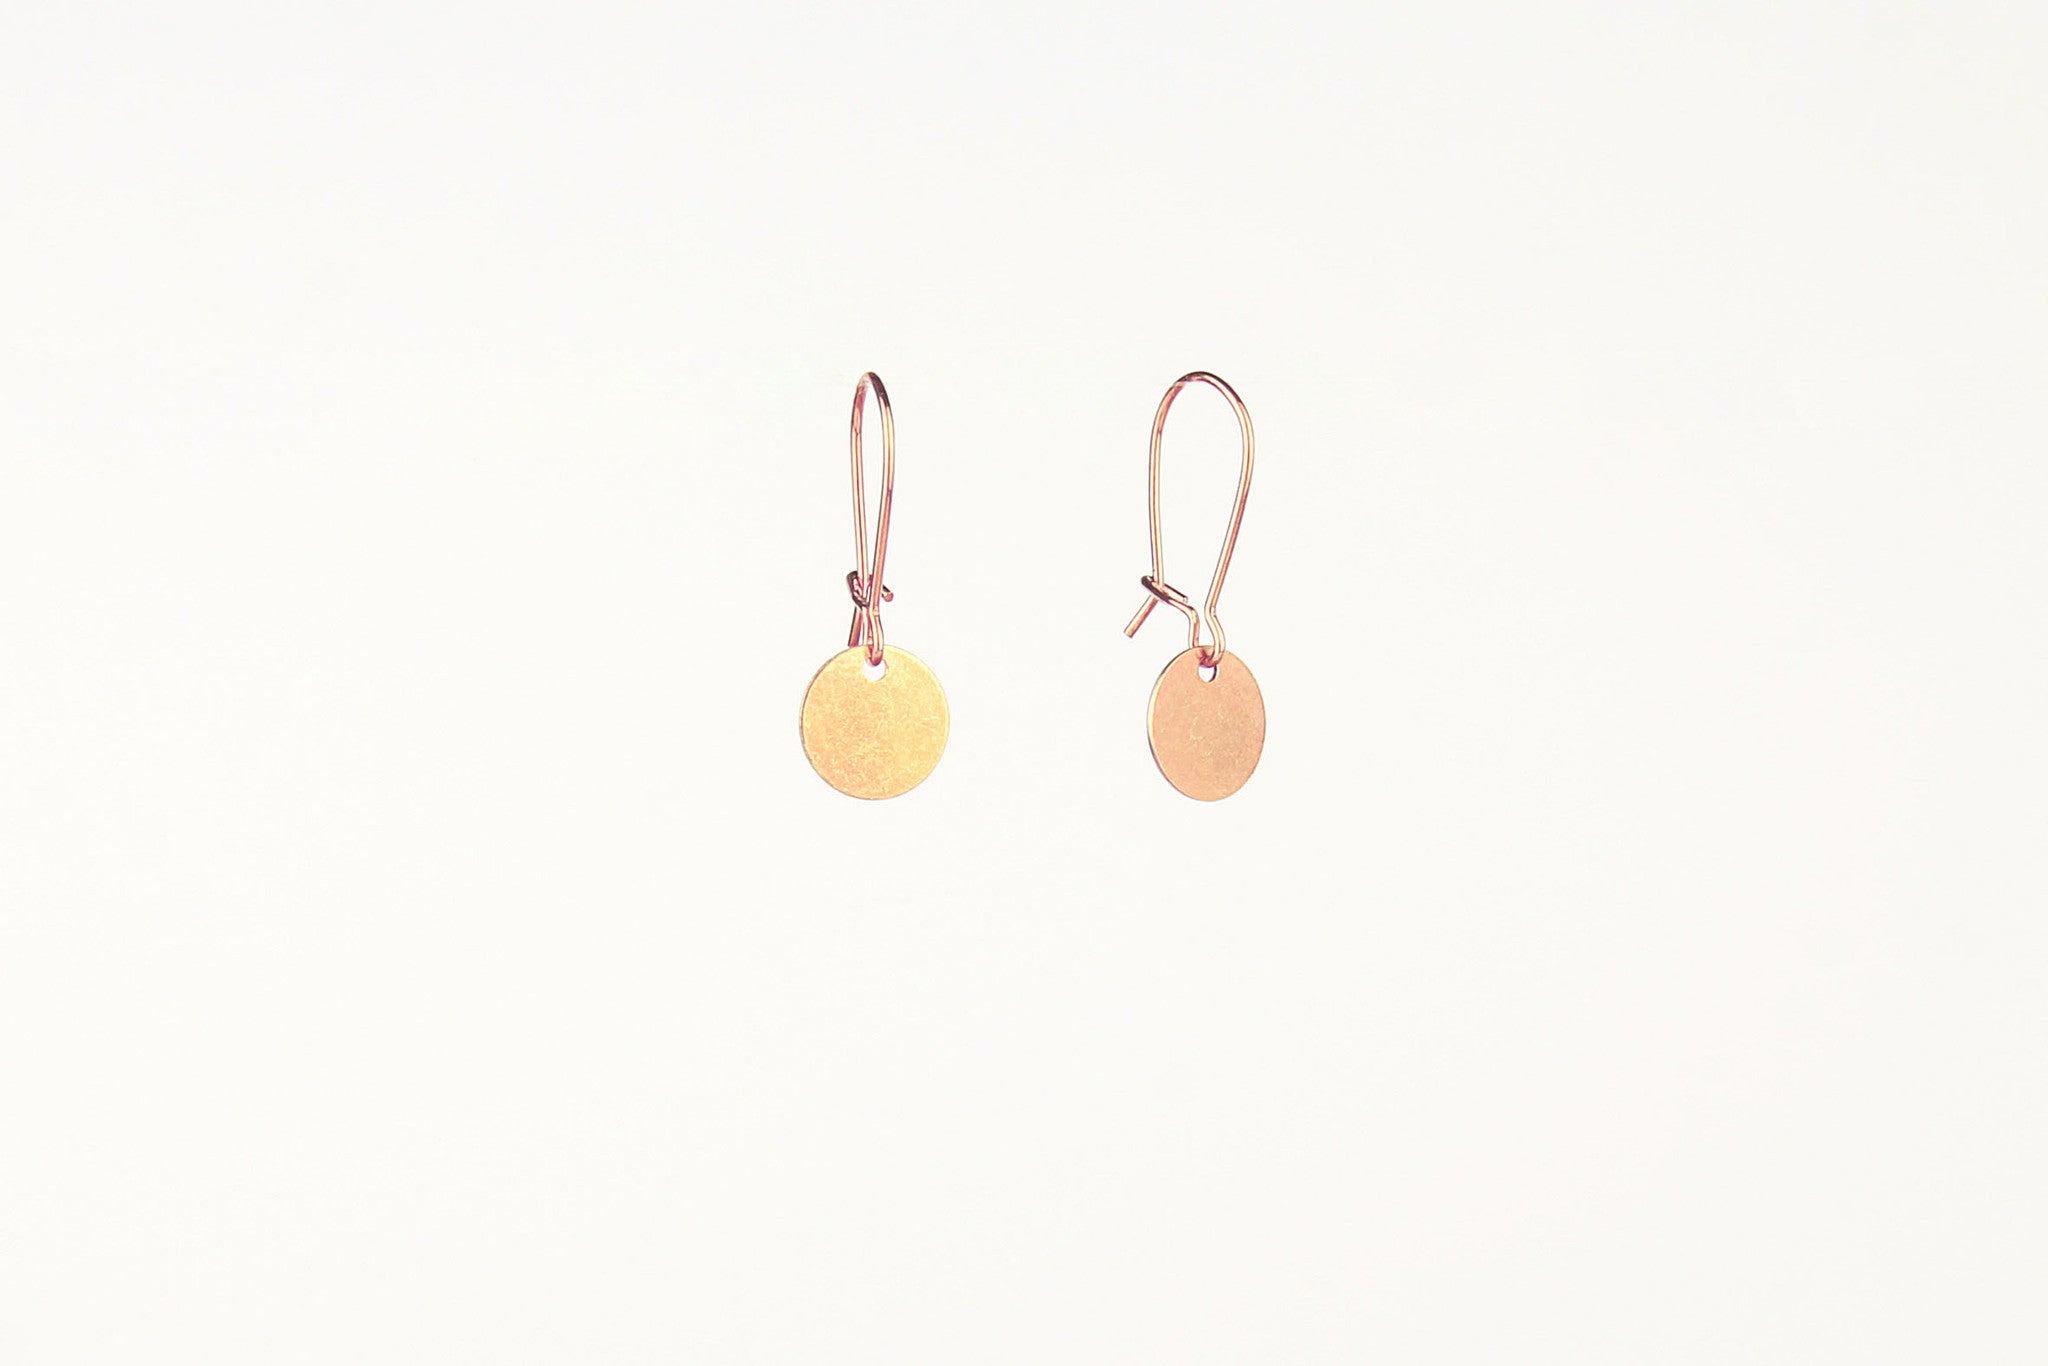 jewelberry ohrringe earrings small disc rose gold plated sterling silver fine jewelry handmade with love fairtrade